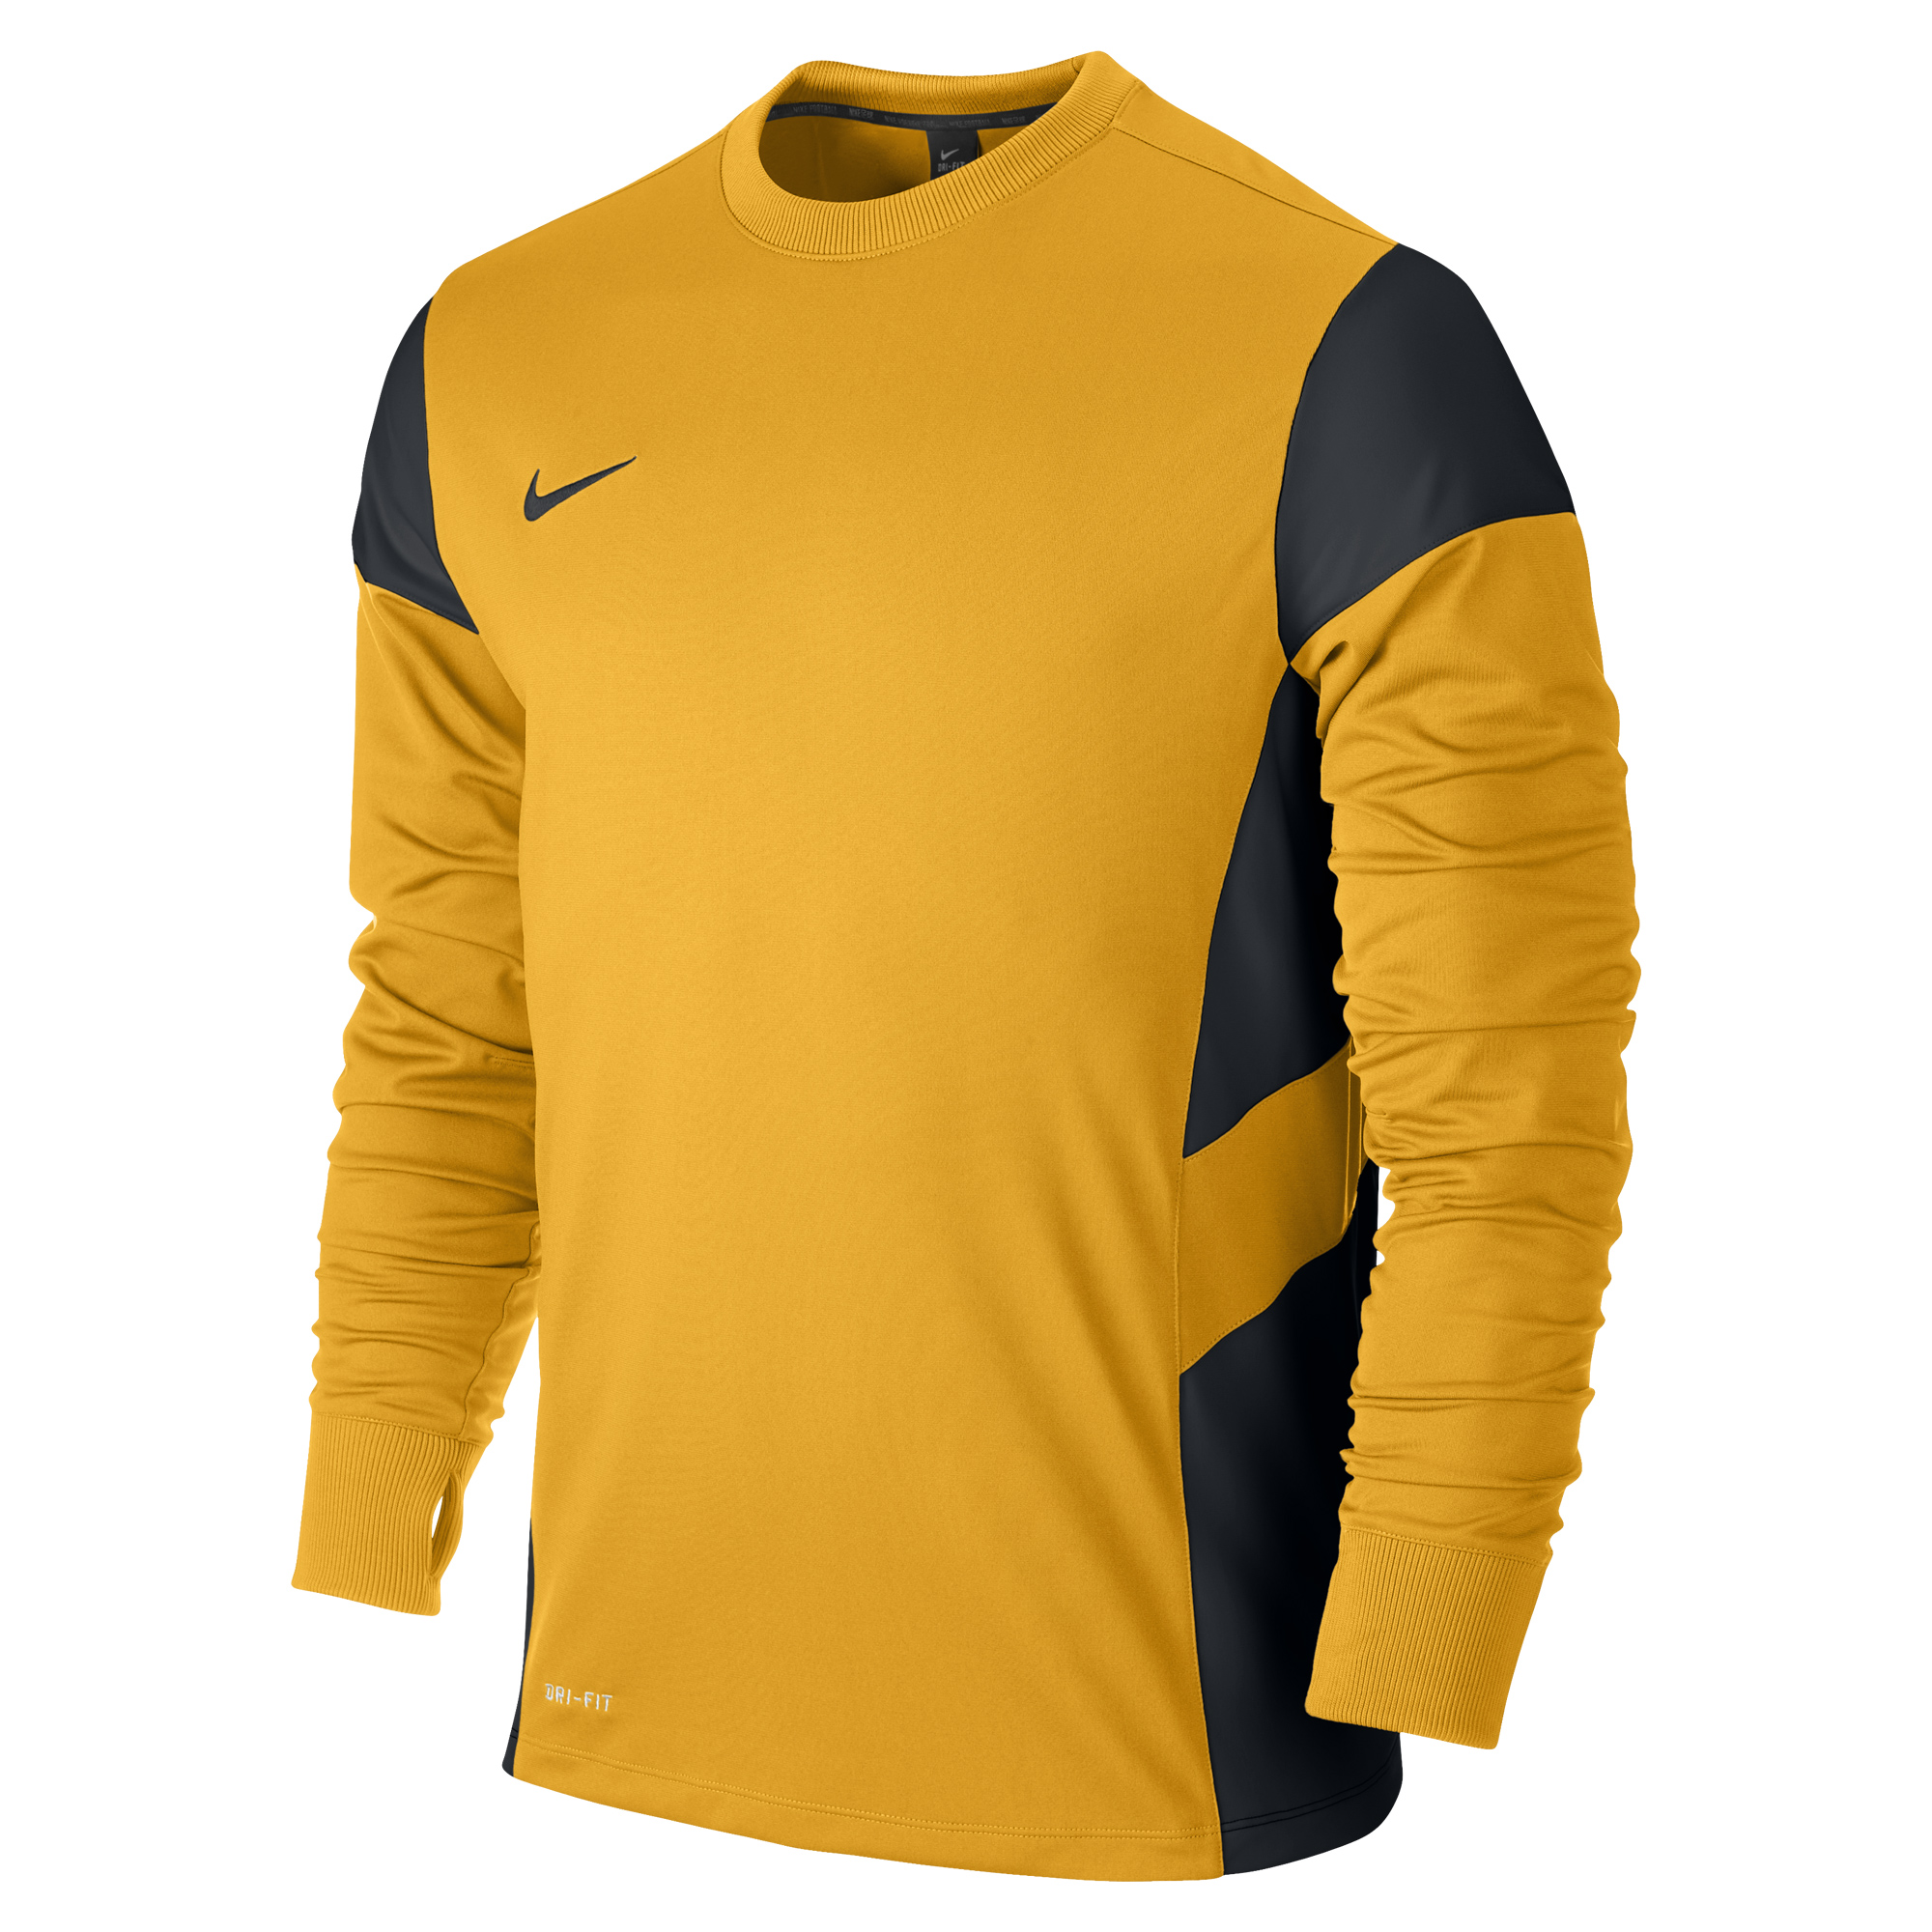 Nike - Midlayer 739 University Gold/Black/ (Black)